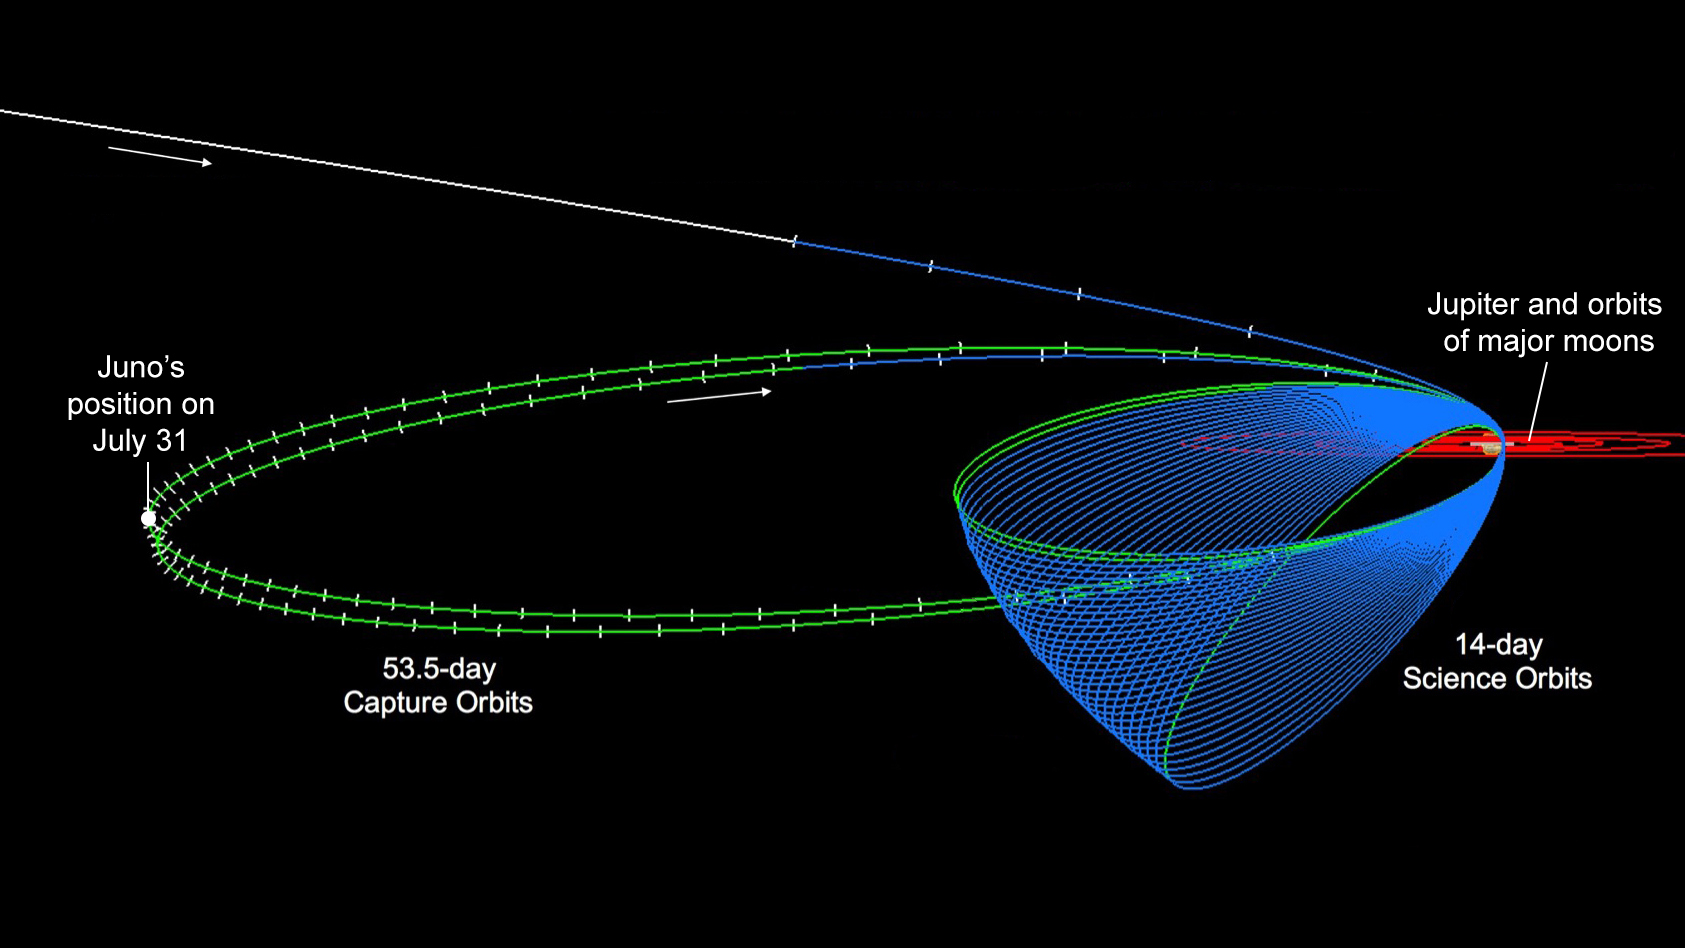 This diagram shows the Juno spacecraft's orbits, including its two long, stretched-out capture orbits. The spacecraft's position on July 31 is indicated at left. - Image Credits: NASA/JPL-Caltech